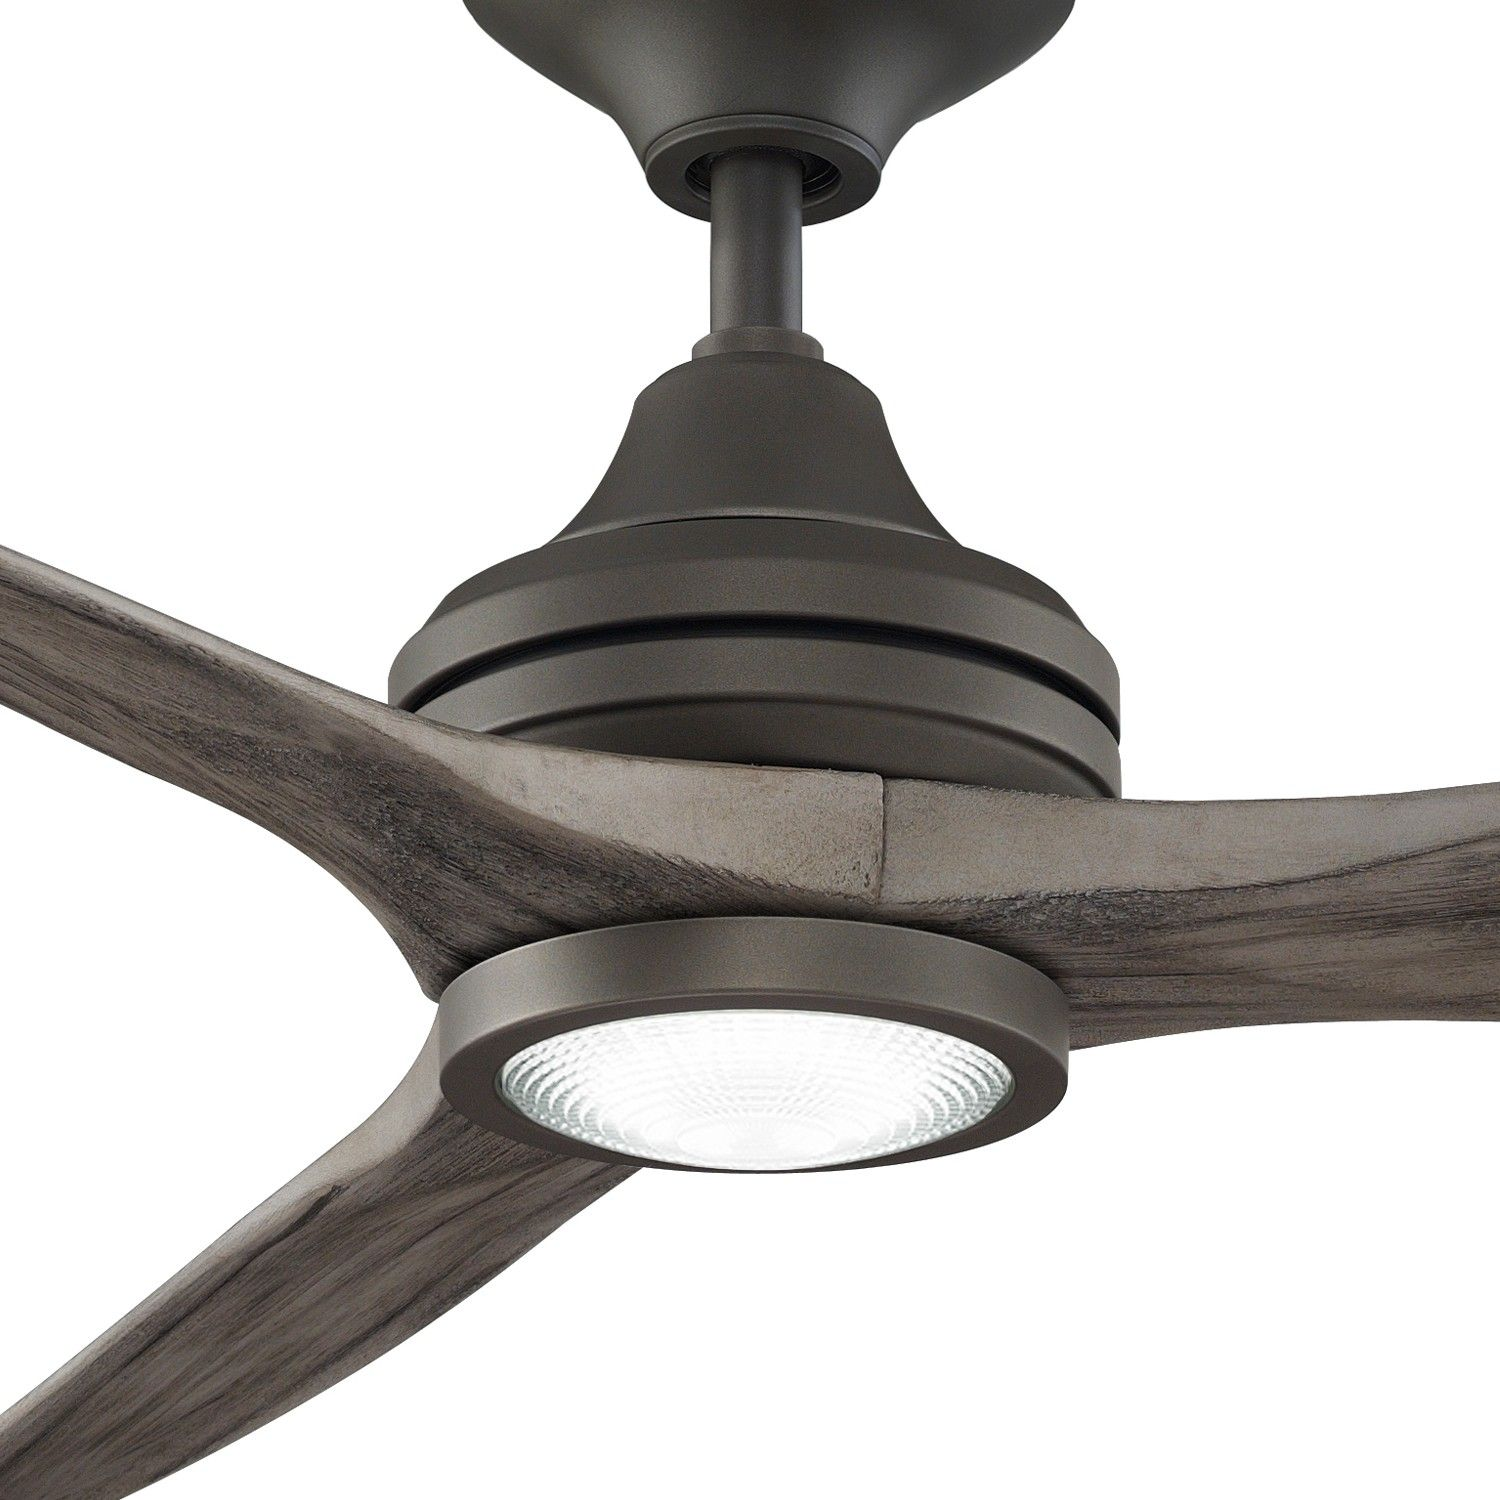 Matte Greige Finish Weathered Wood Blades Light Kit Detail Wood Ceiling Fans Ceiling Fan Ceiling Fans Without Lights